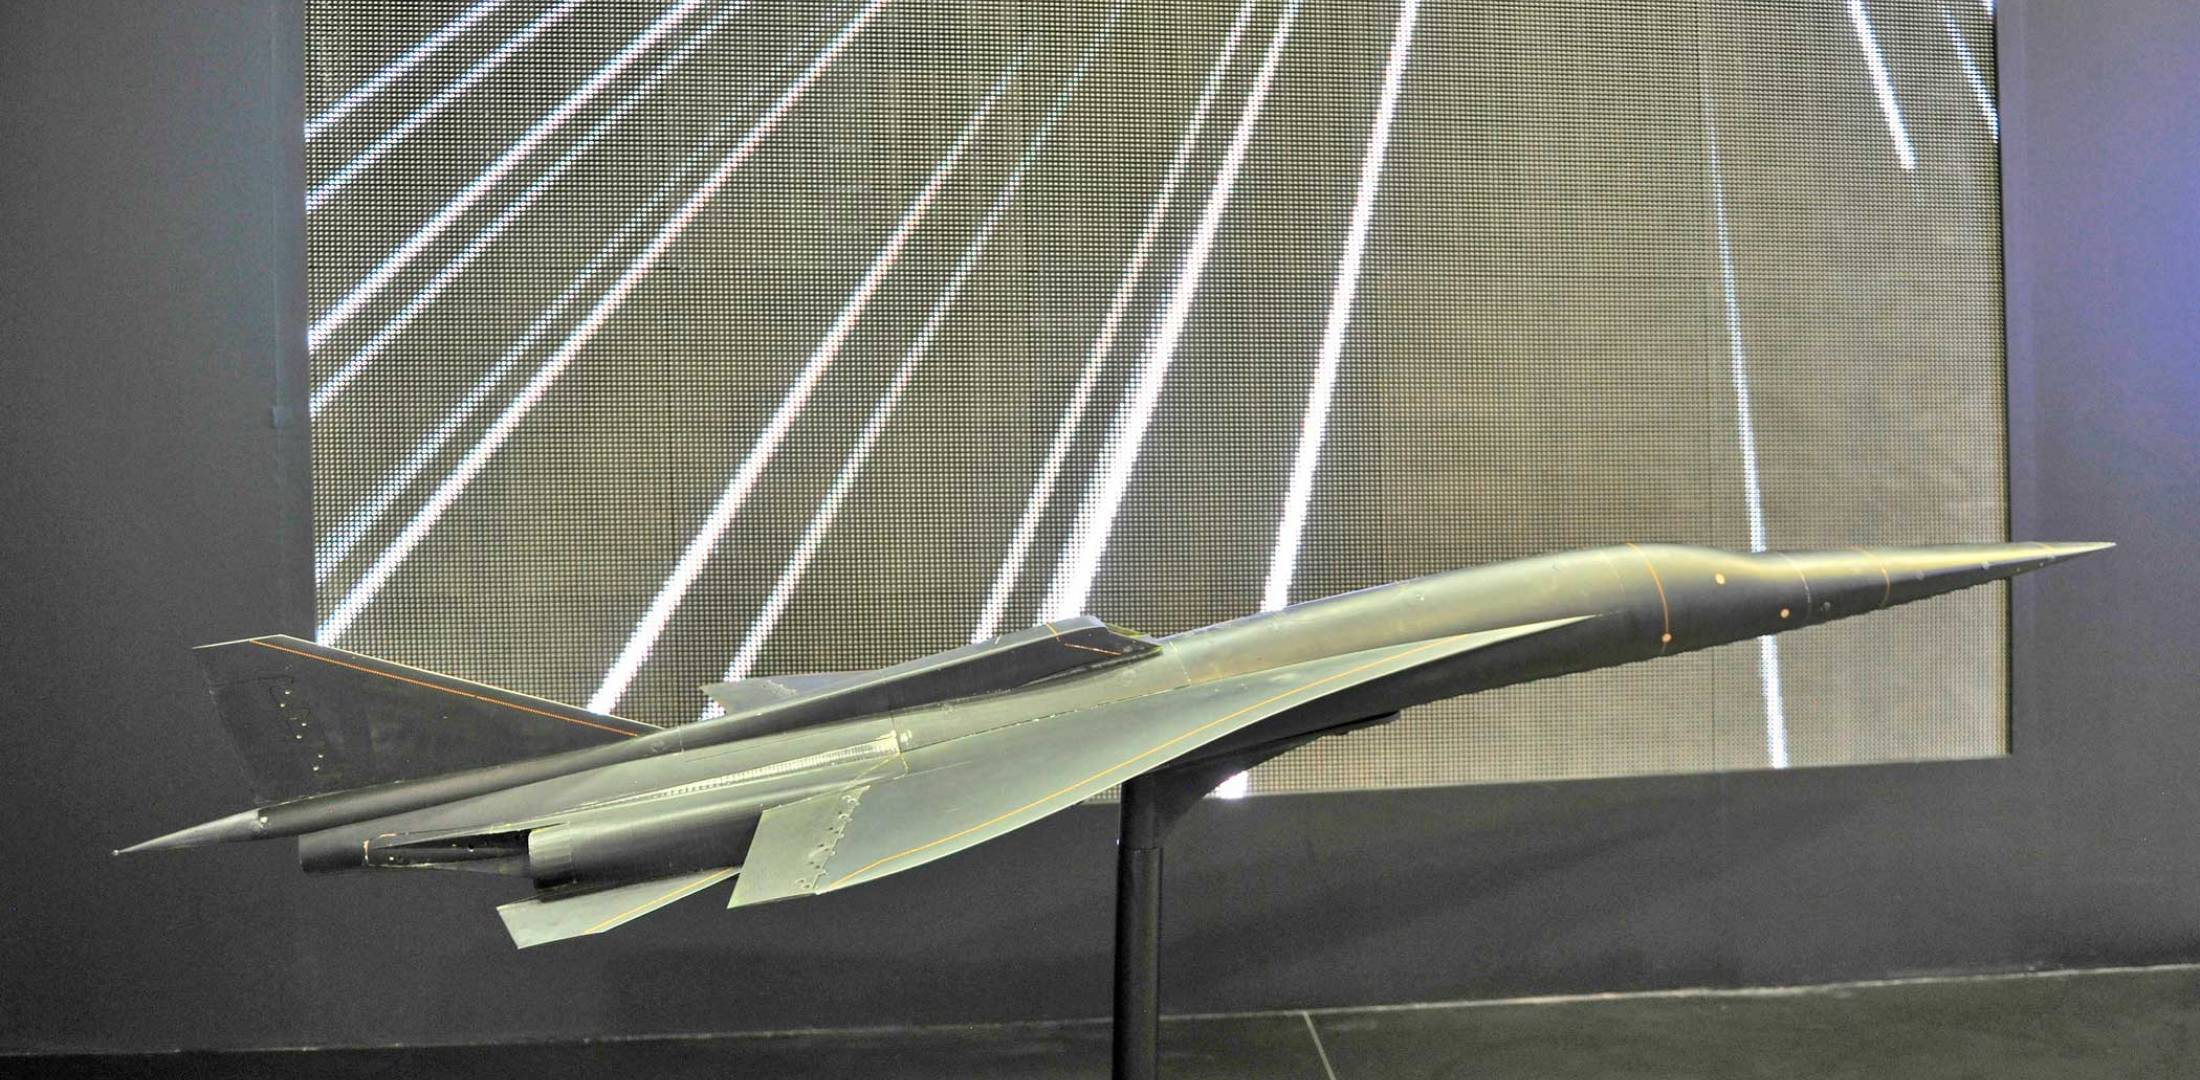 Boom Supersonic Mach 2.2 aircraft